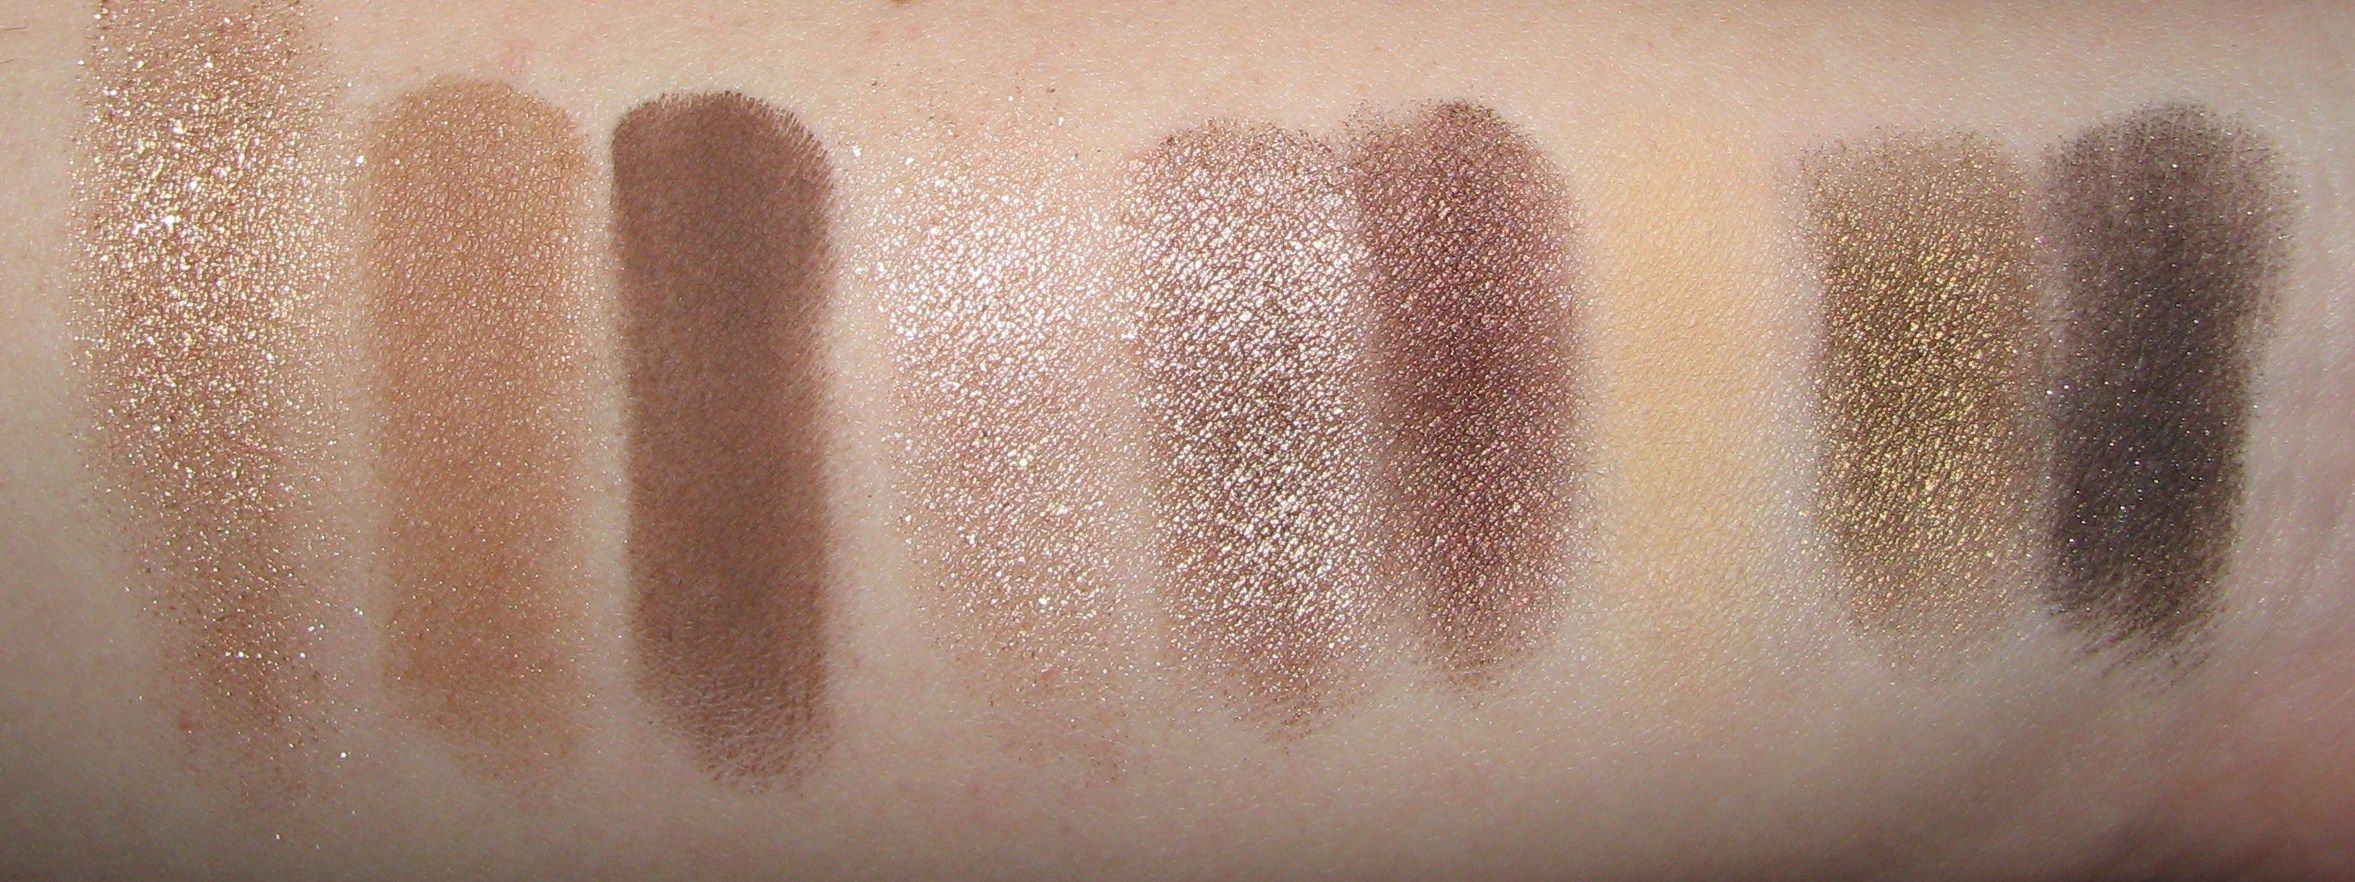 Natural At Night Eyeshadow Palette by Too Faced #4